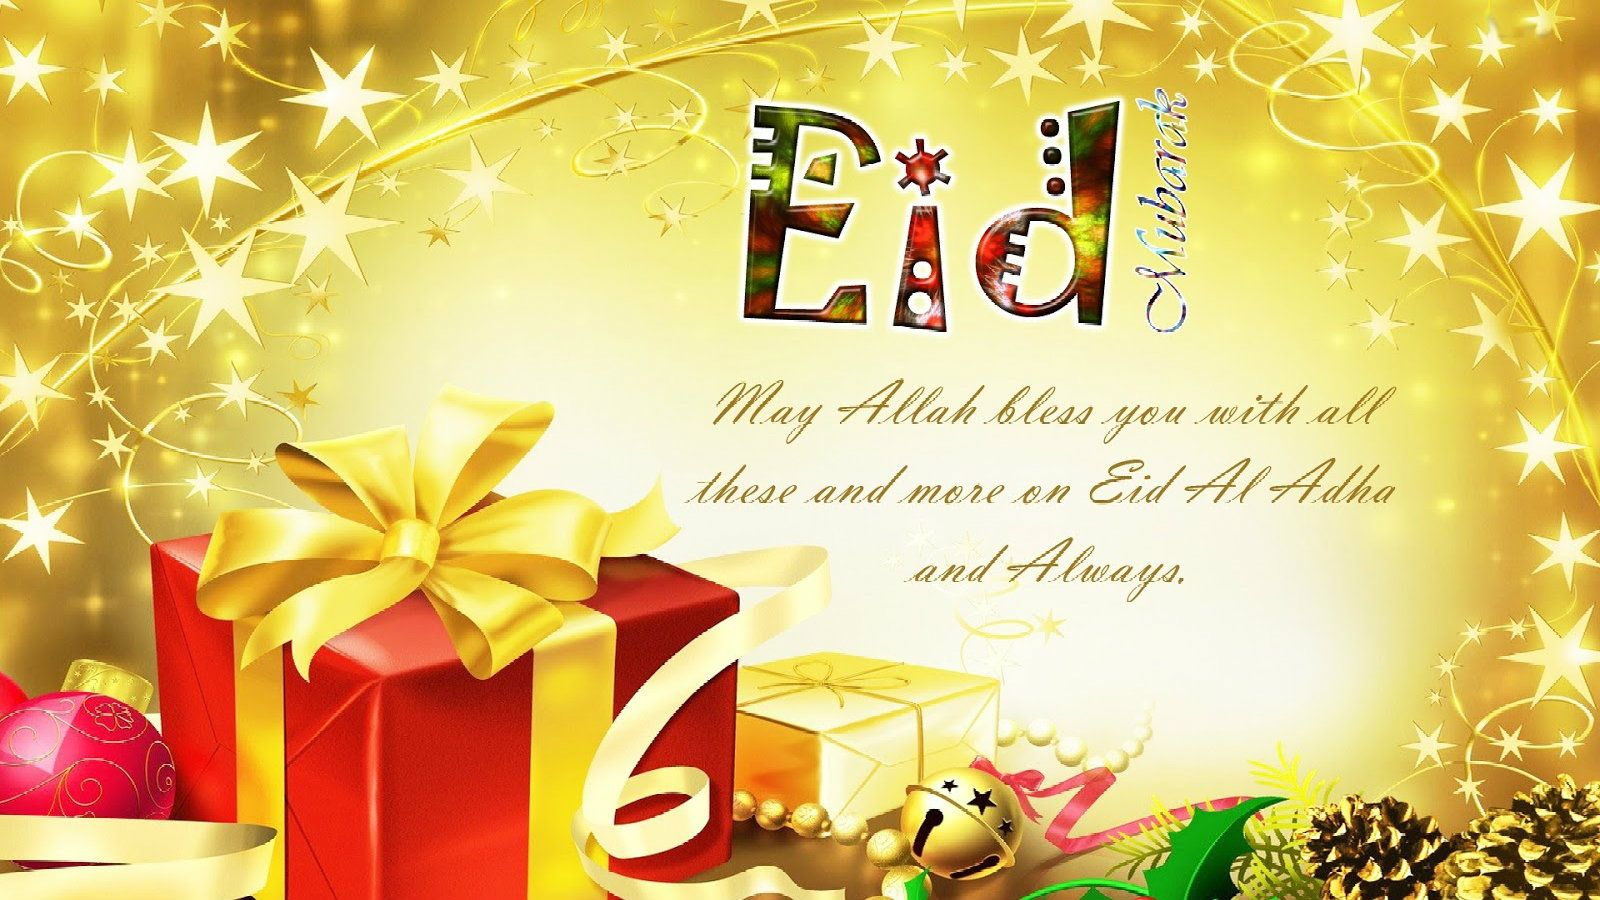 Rivergate resort wishes you all eid mubarak eid is one of the most we have come to share with you the bakri id eid ul adha 2014 greetings wallpapers for all our dear visitors it is one of the two religious holidays that kristyandbryce Choice Image